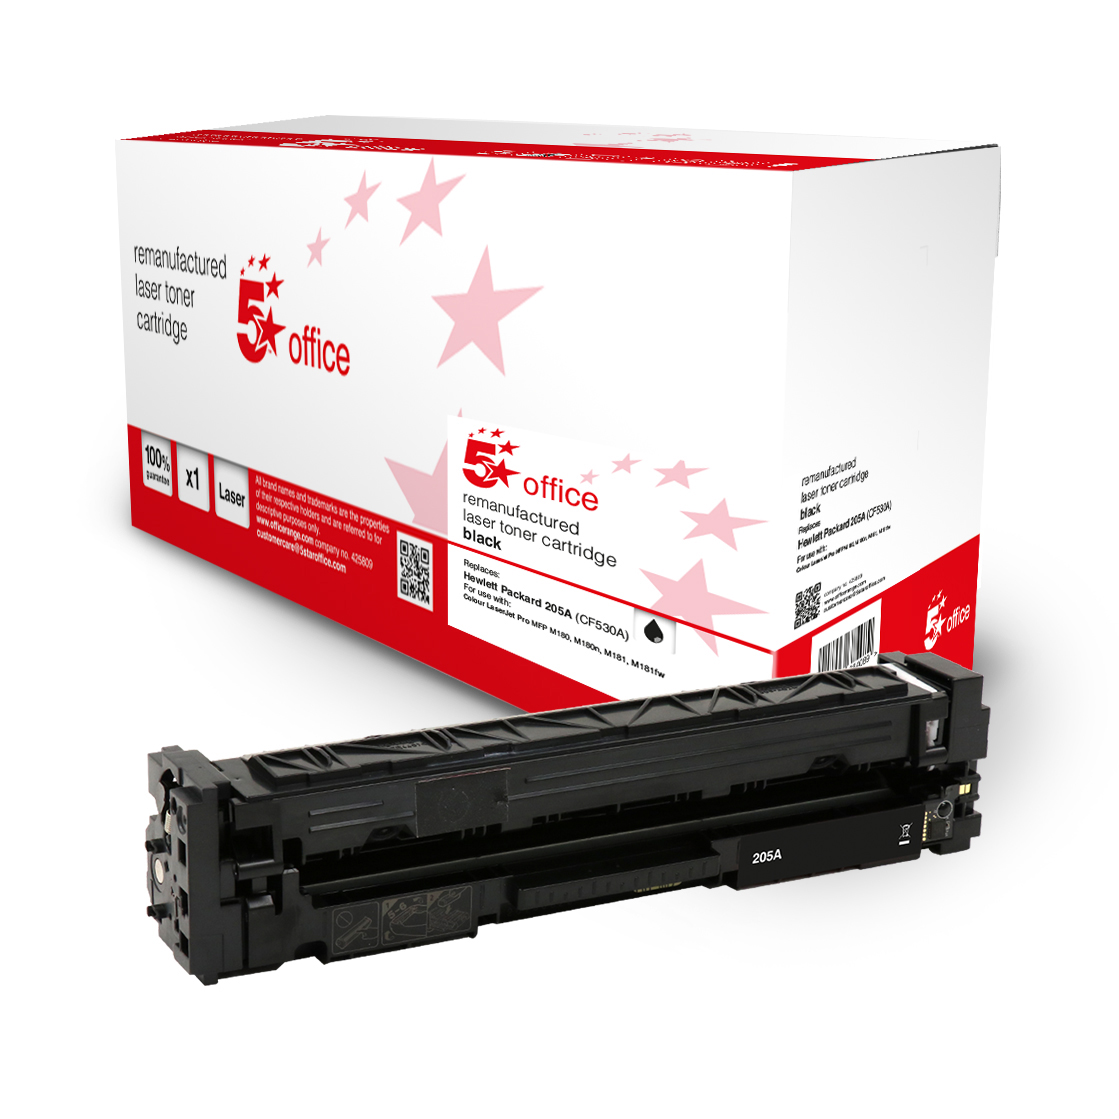 Laser Toner Cartridges 5 Star Office Remanufactured Toner Cartridge Page Life Black 1100pp HP 205A CF530A Alternative